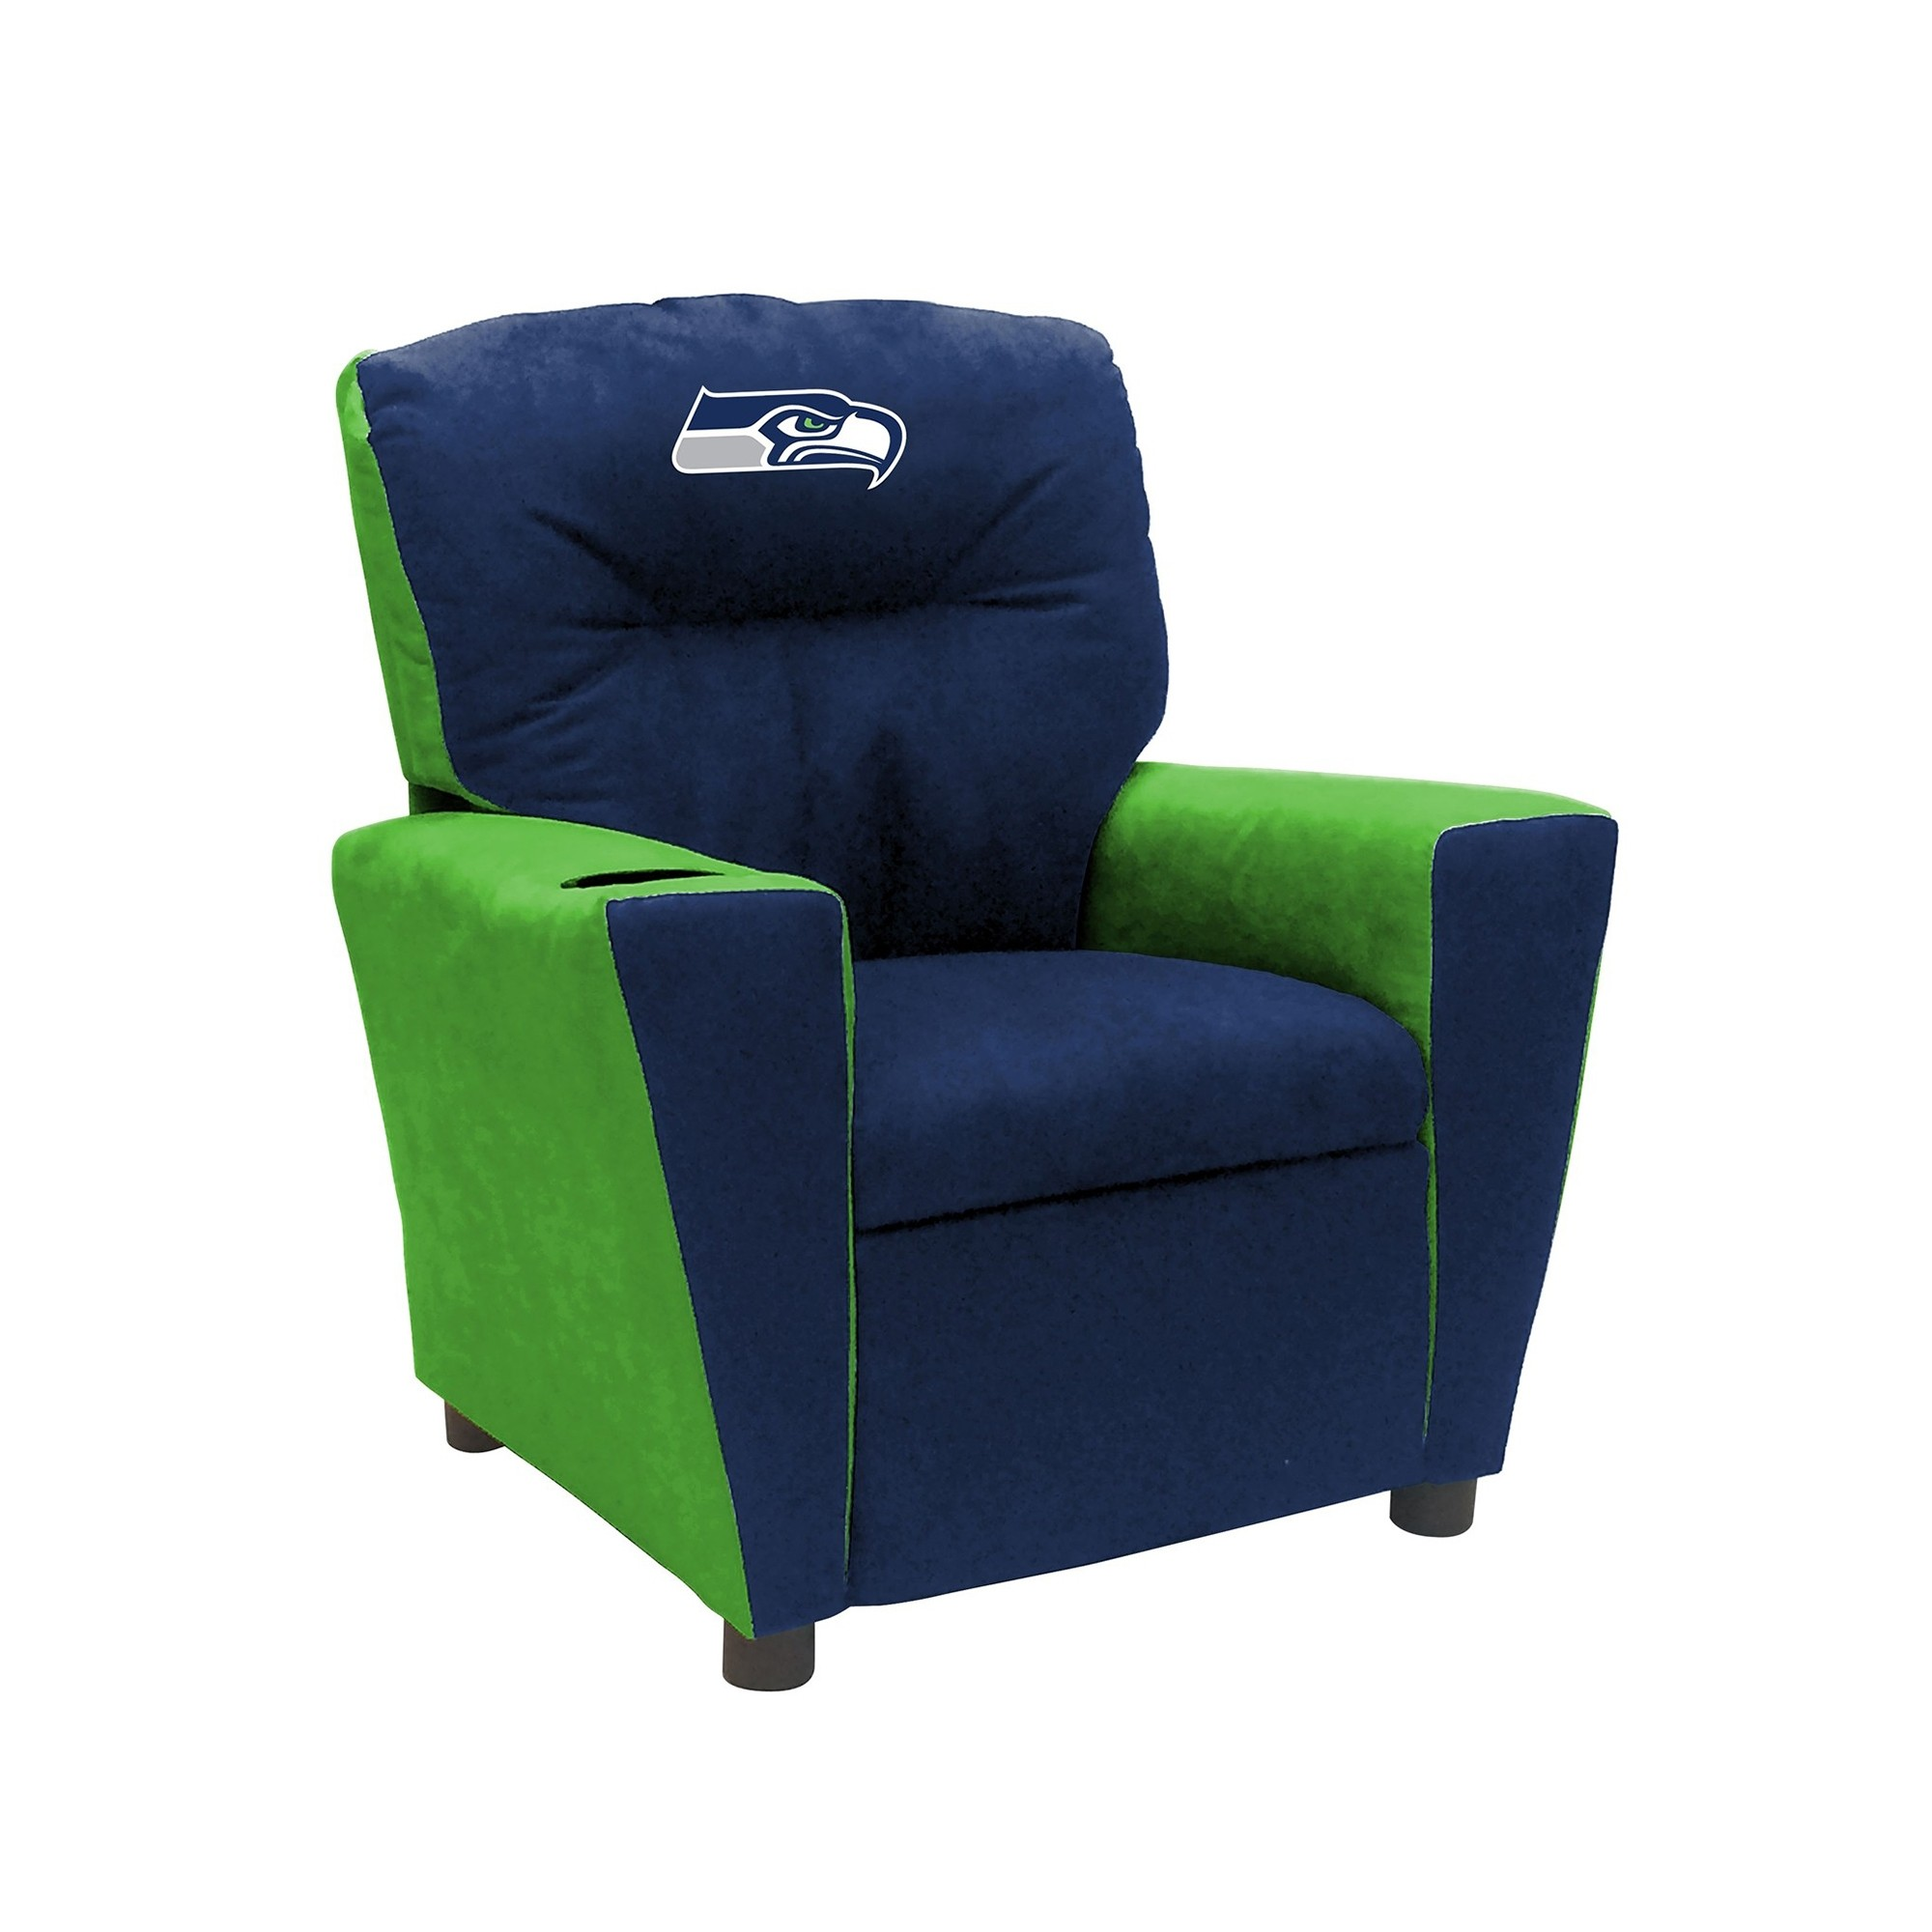 Nfl Football Seattle Seahawks Kids Dish Sets - 122-1024 - Seattle Seahawks Fan Favorite Recliner; Kids 122-1024